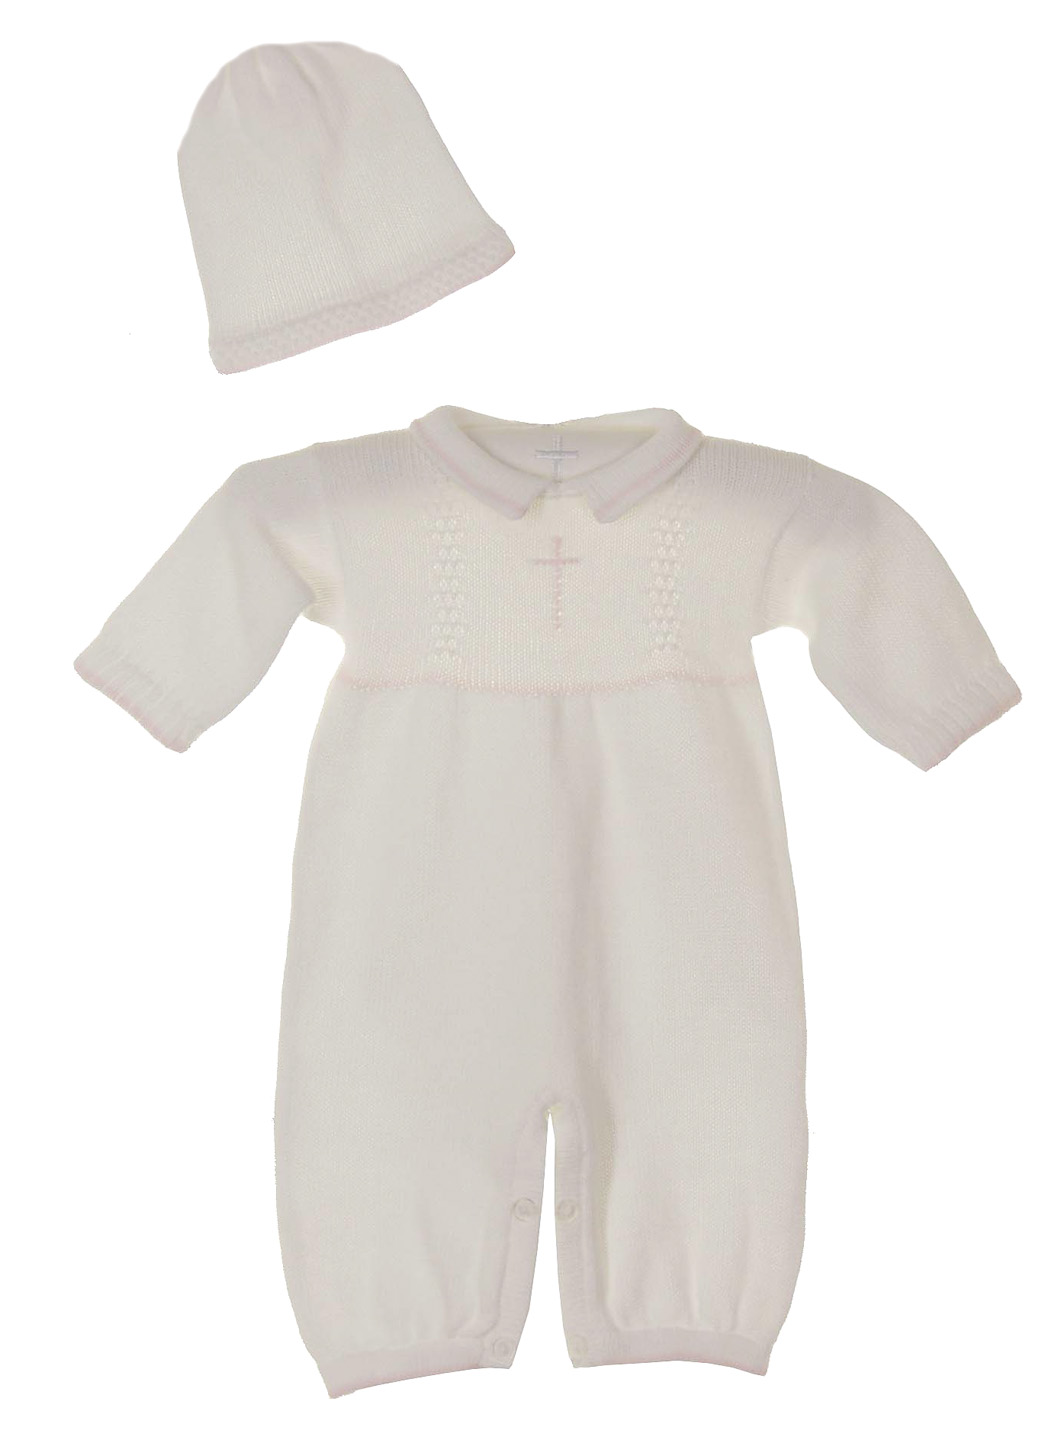 cfe52238b383 Baby s Trousseau white cotton knit romper and hat set with pink cross